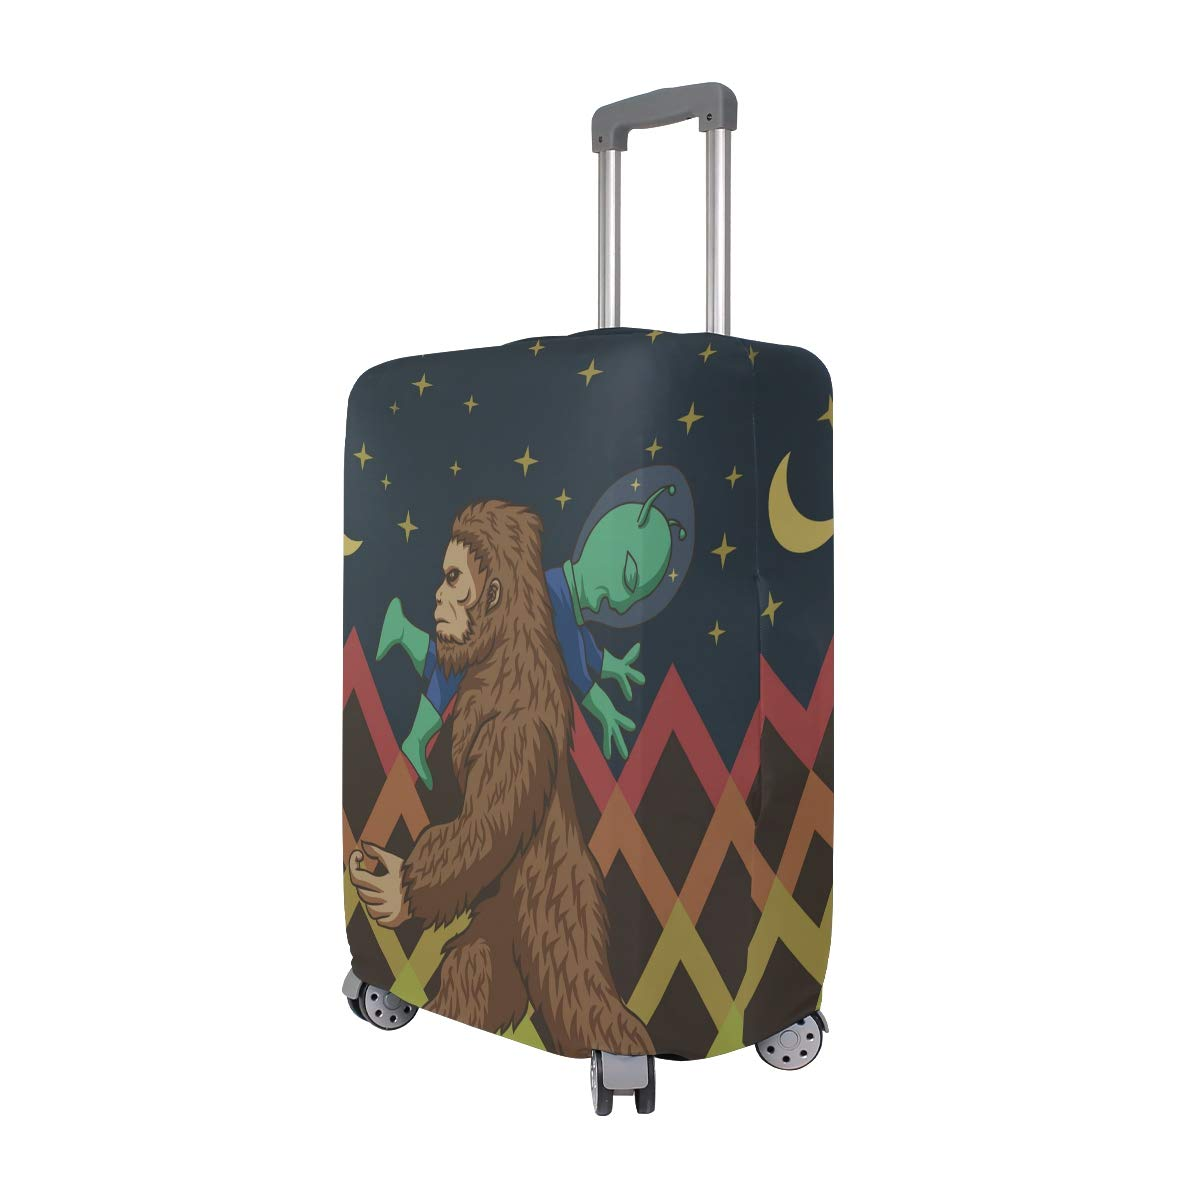 Travel Luggage Cover Spandex Suitcase Protector Washable Baggage Covers Cartoon Frog